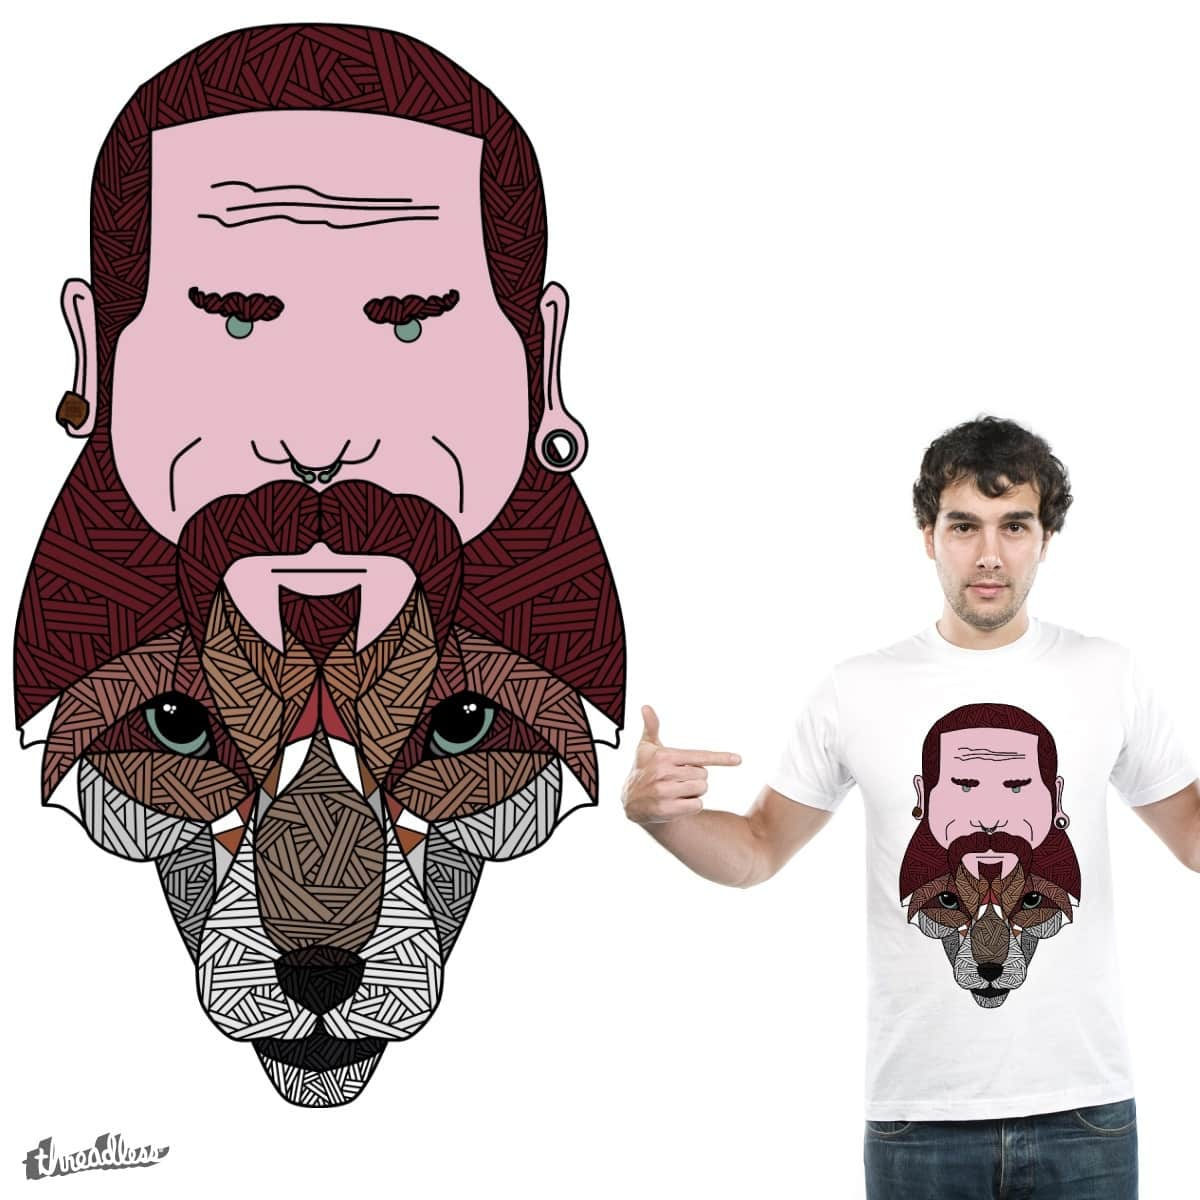 Man is an Animal by Bacustro on Threadless